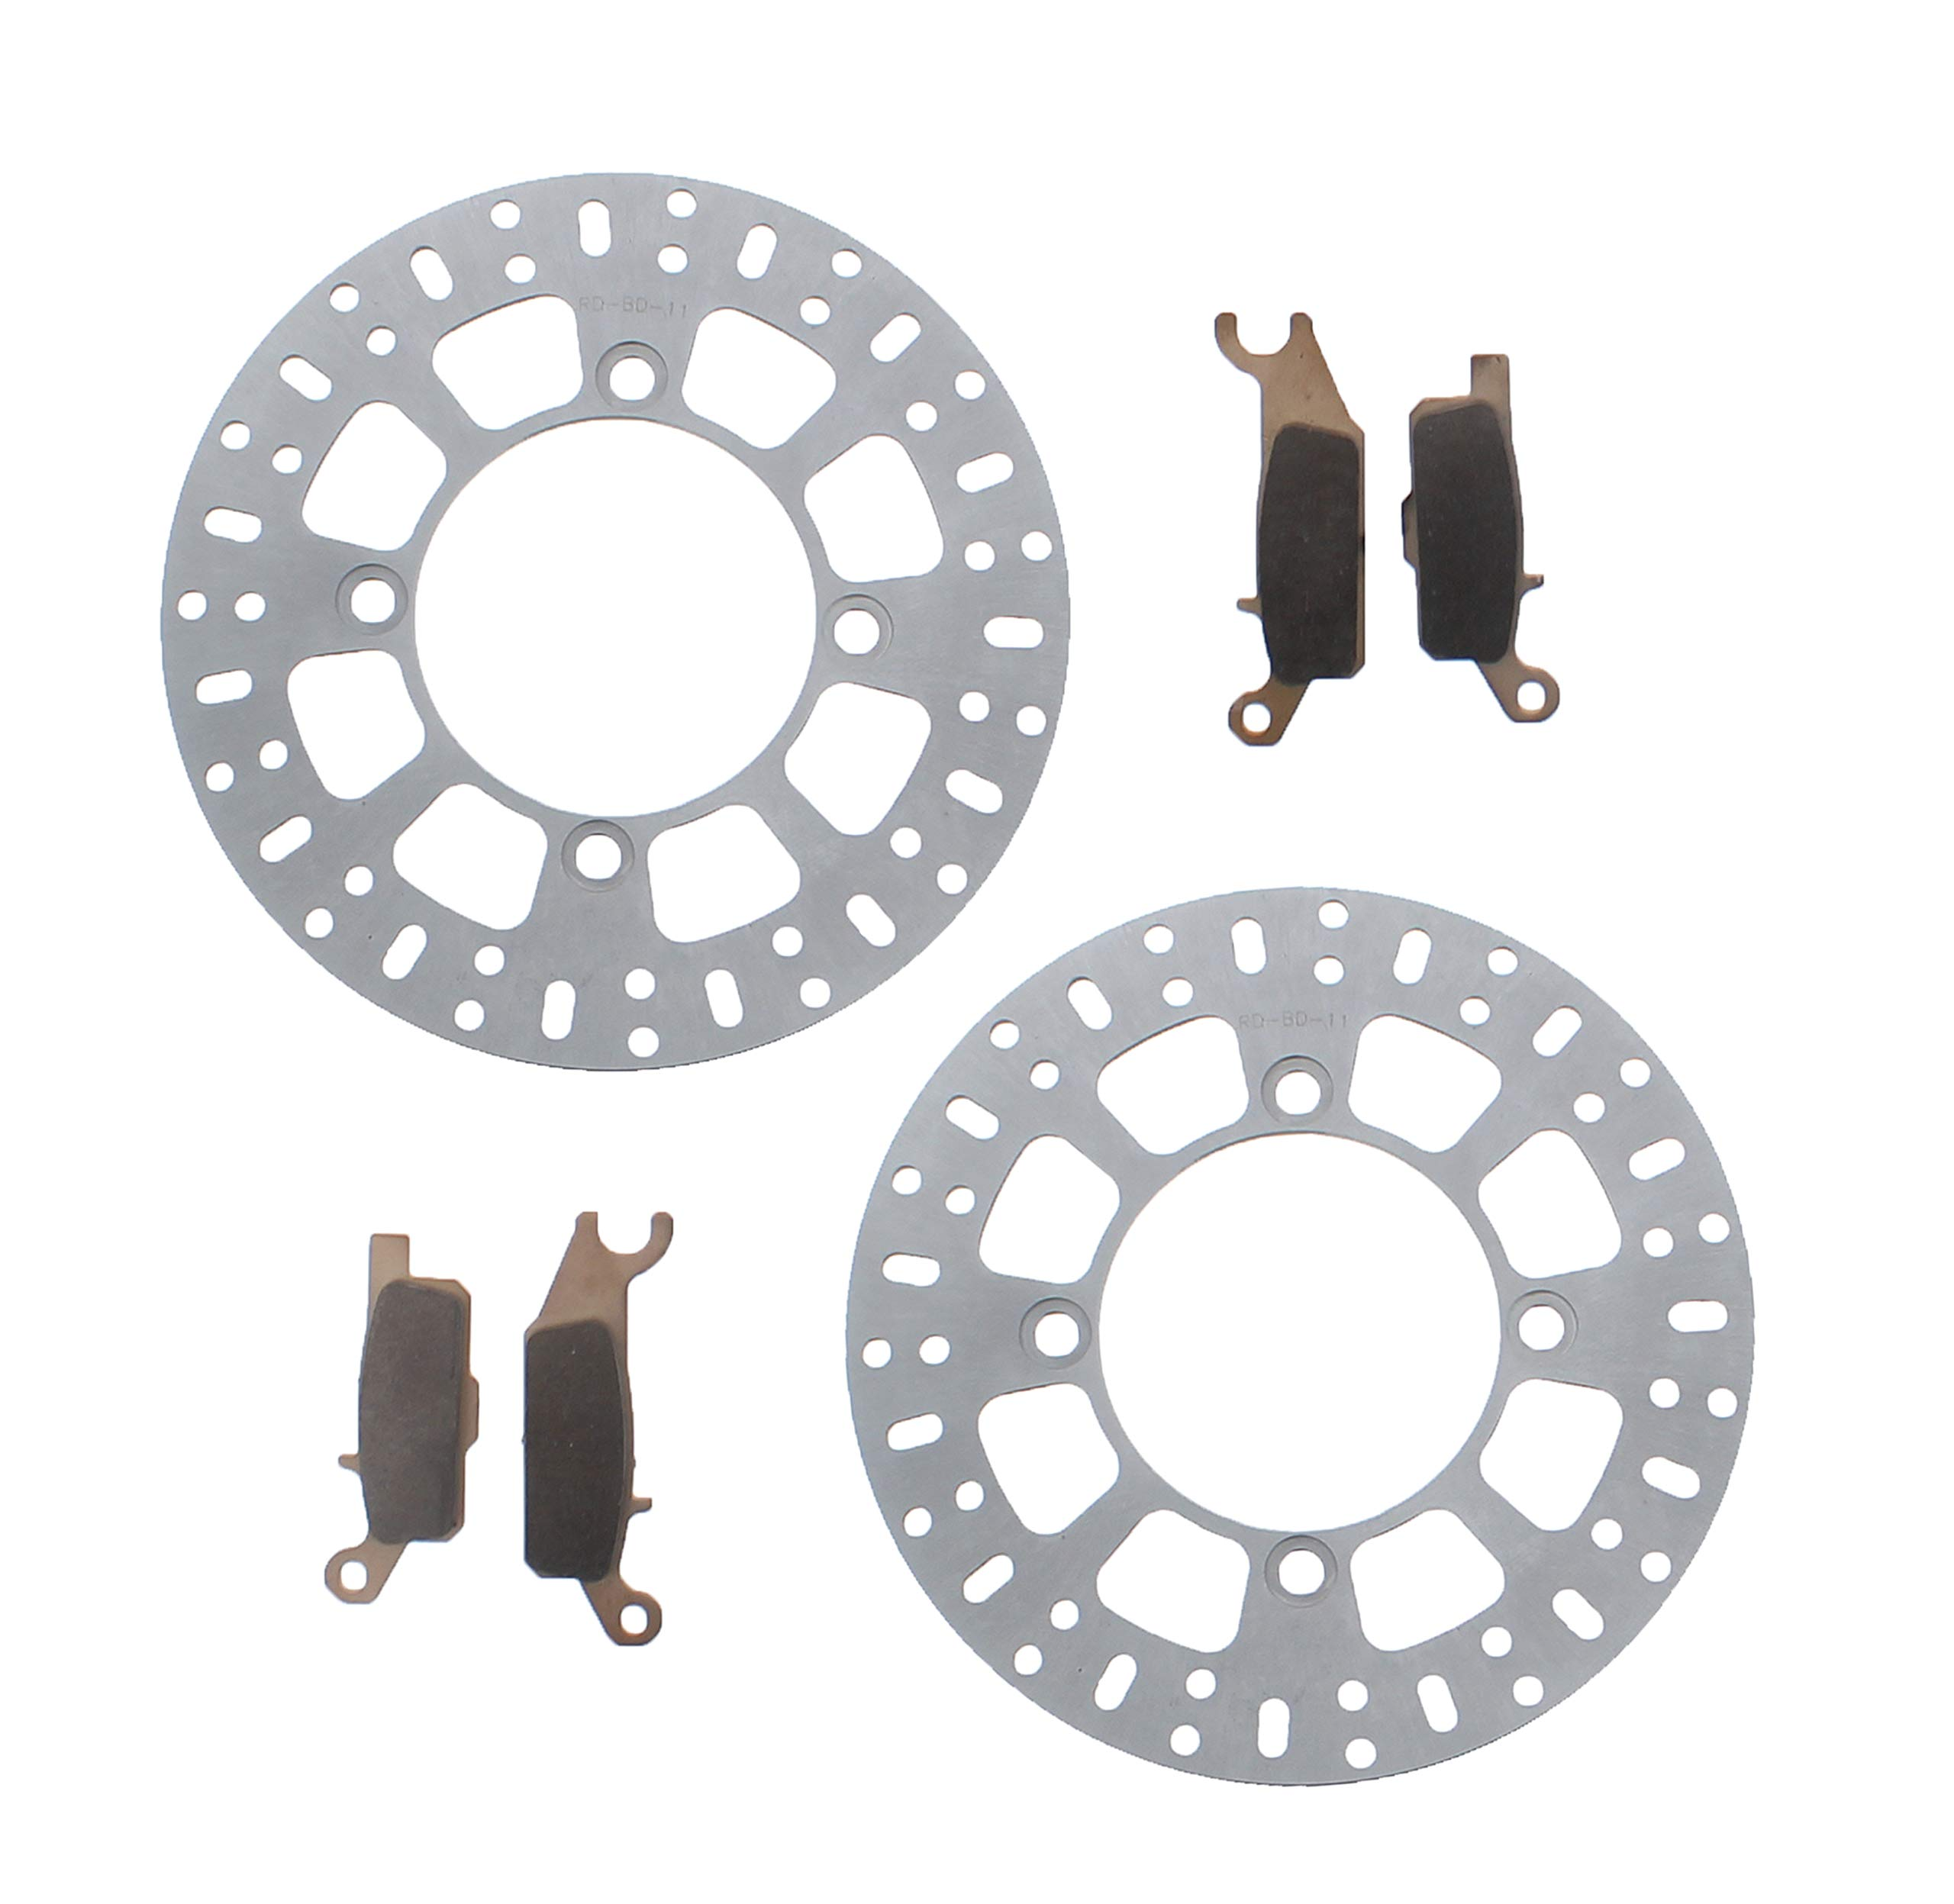 Yamaha YFM700 700 Grizzly 2007-2017 Front Brake Pads and Brake Rotors Discs